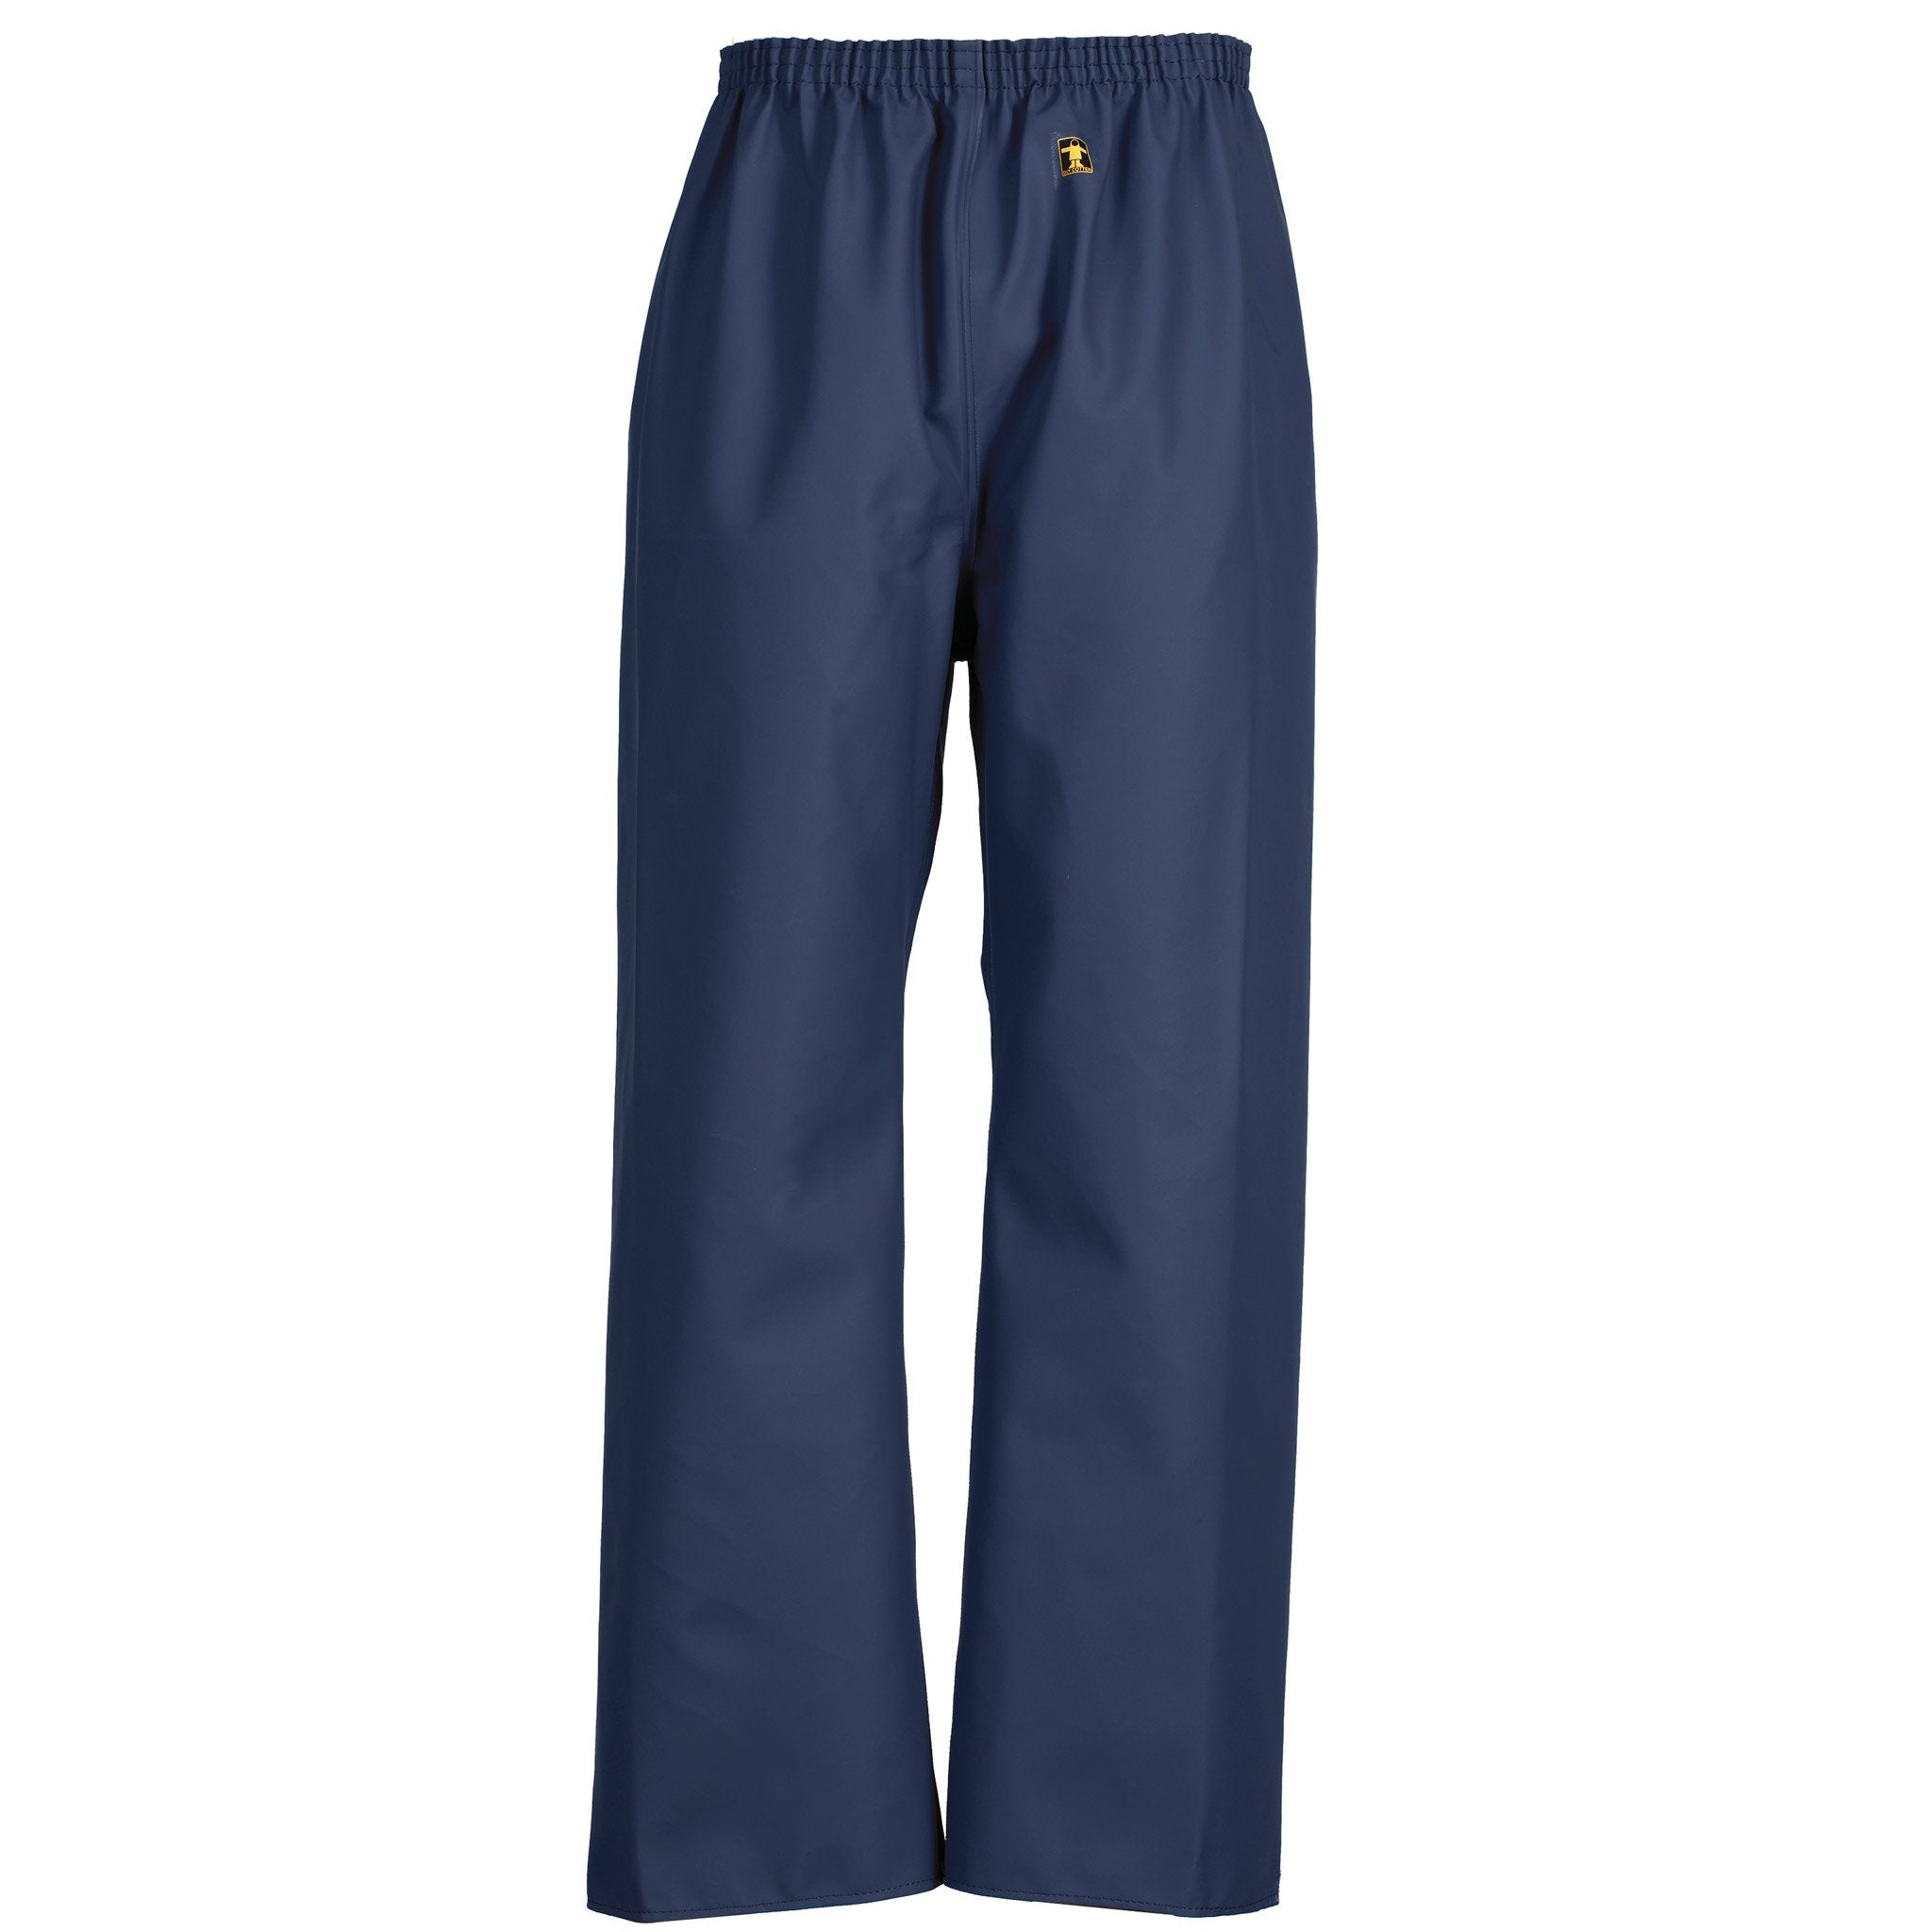 Guy Cotten Pouldo Trousers - Arthur Beale